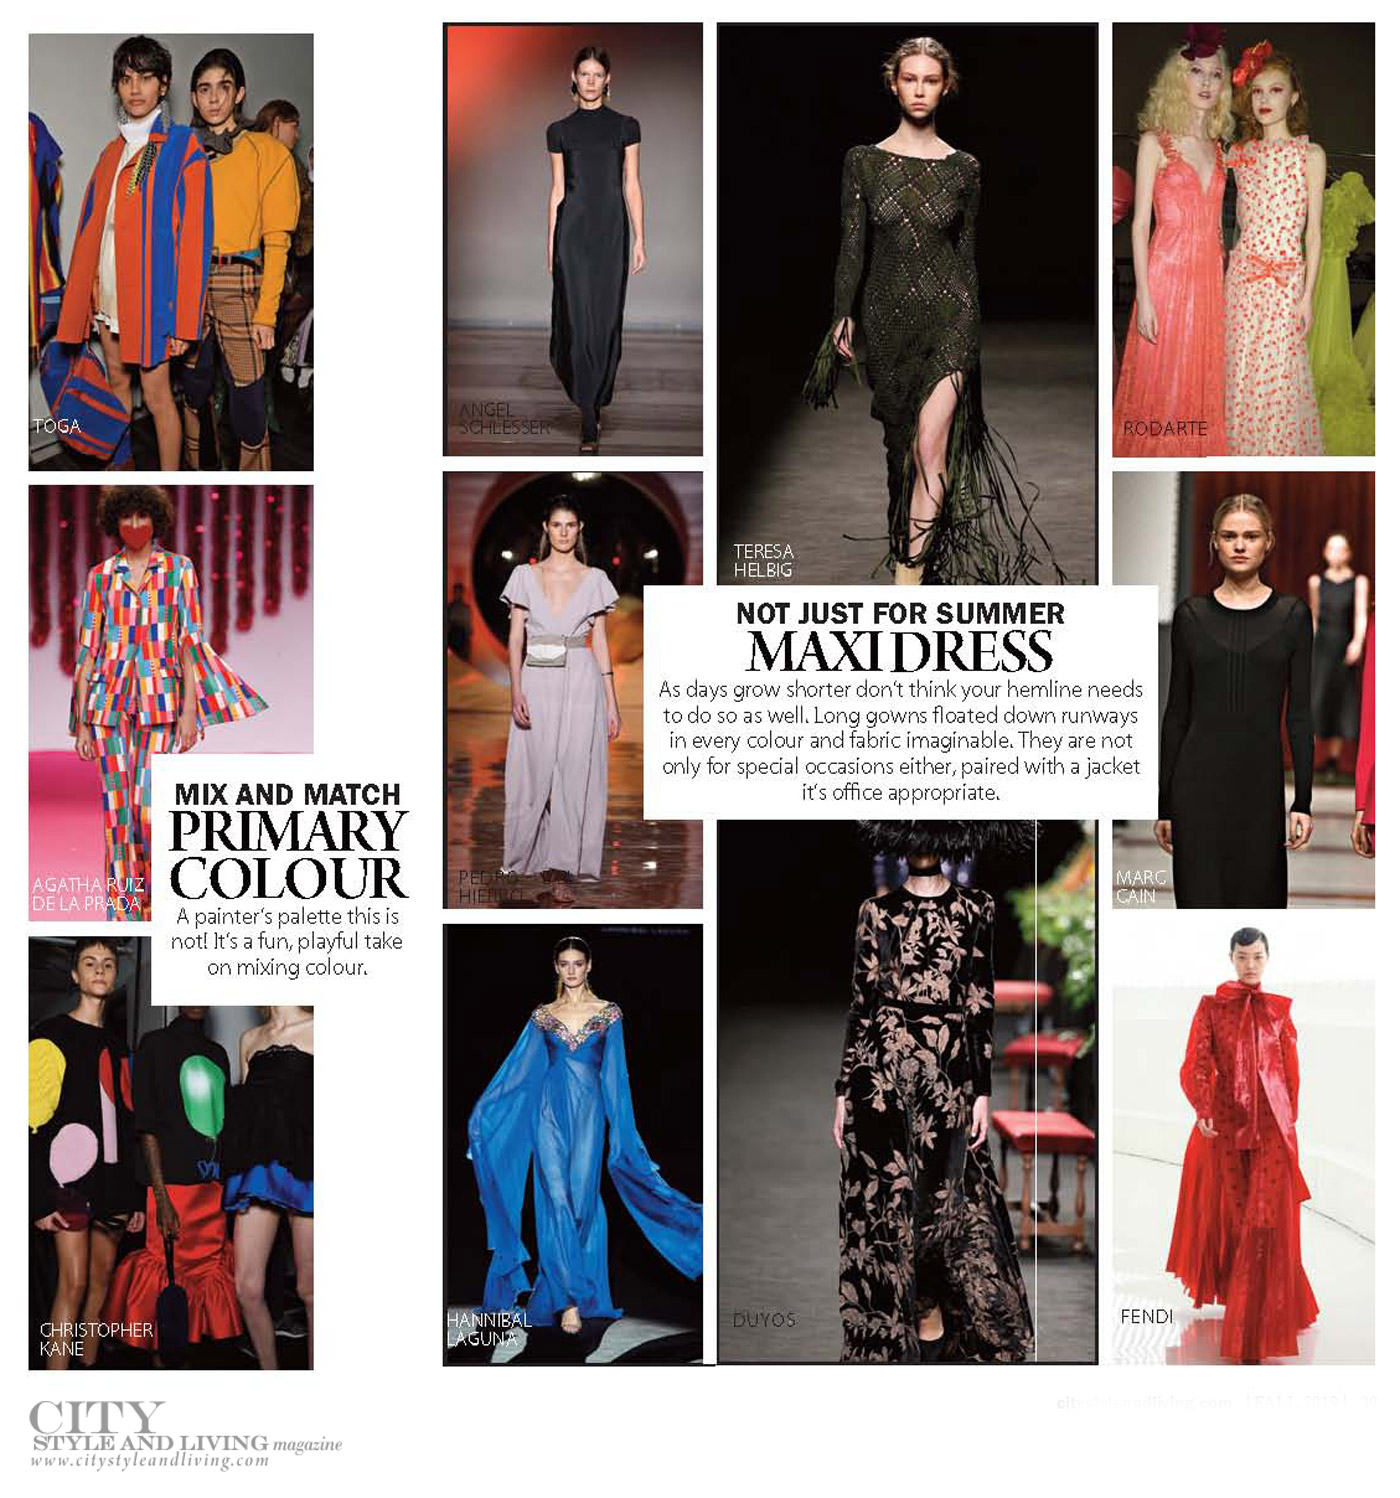 City Style and Living Magazine Fashion Fall 2019  primary colour and maxi dress